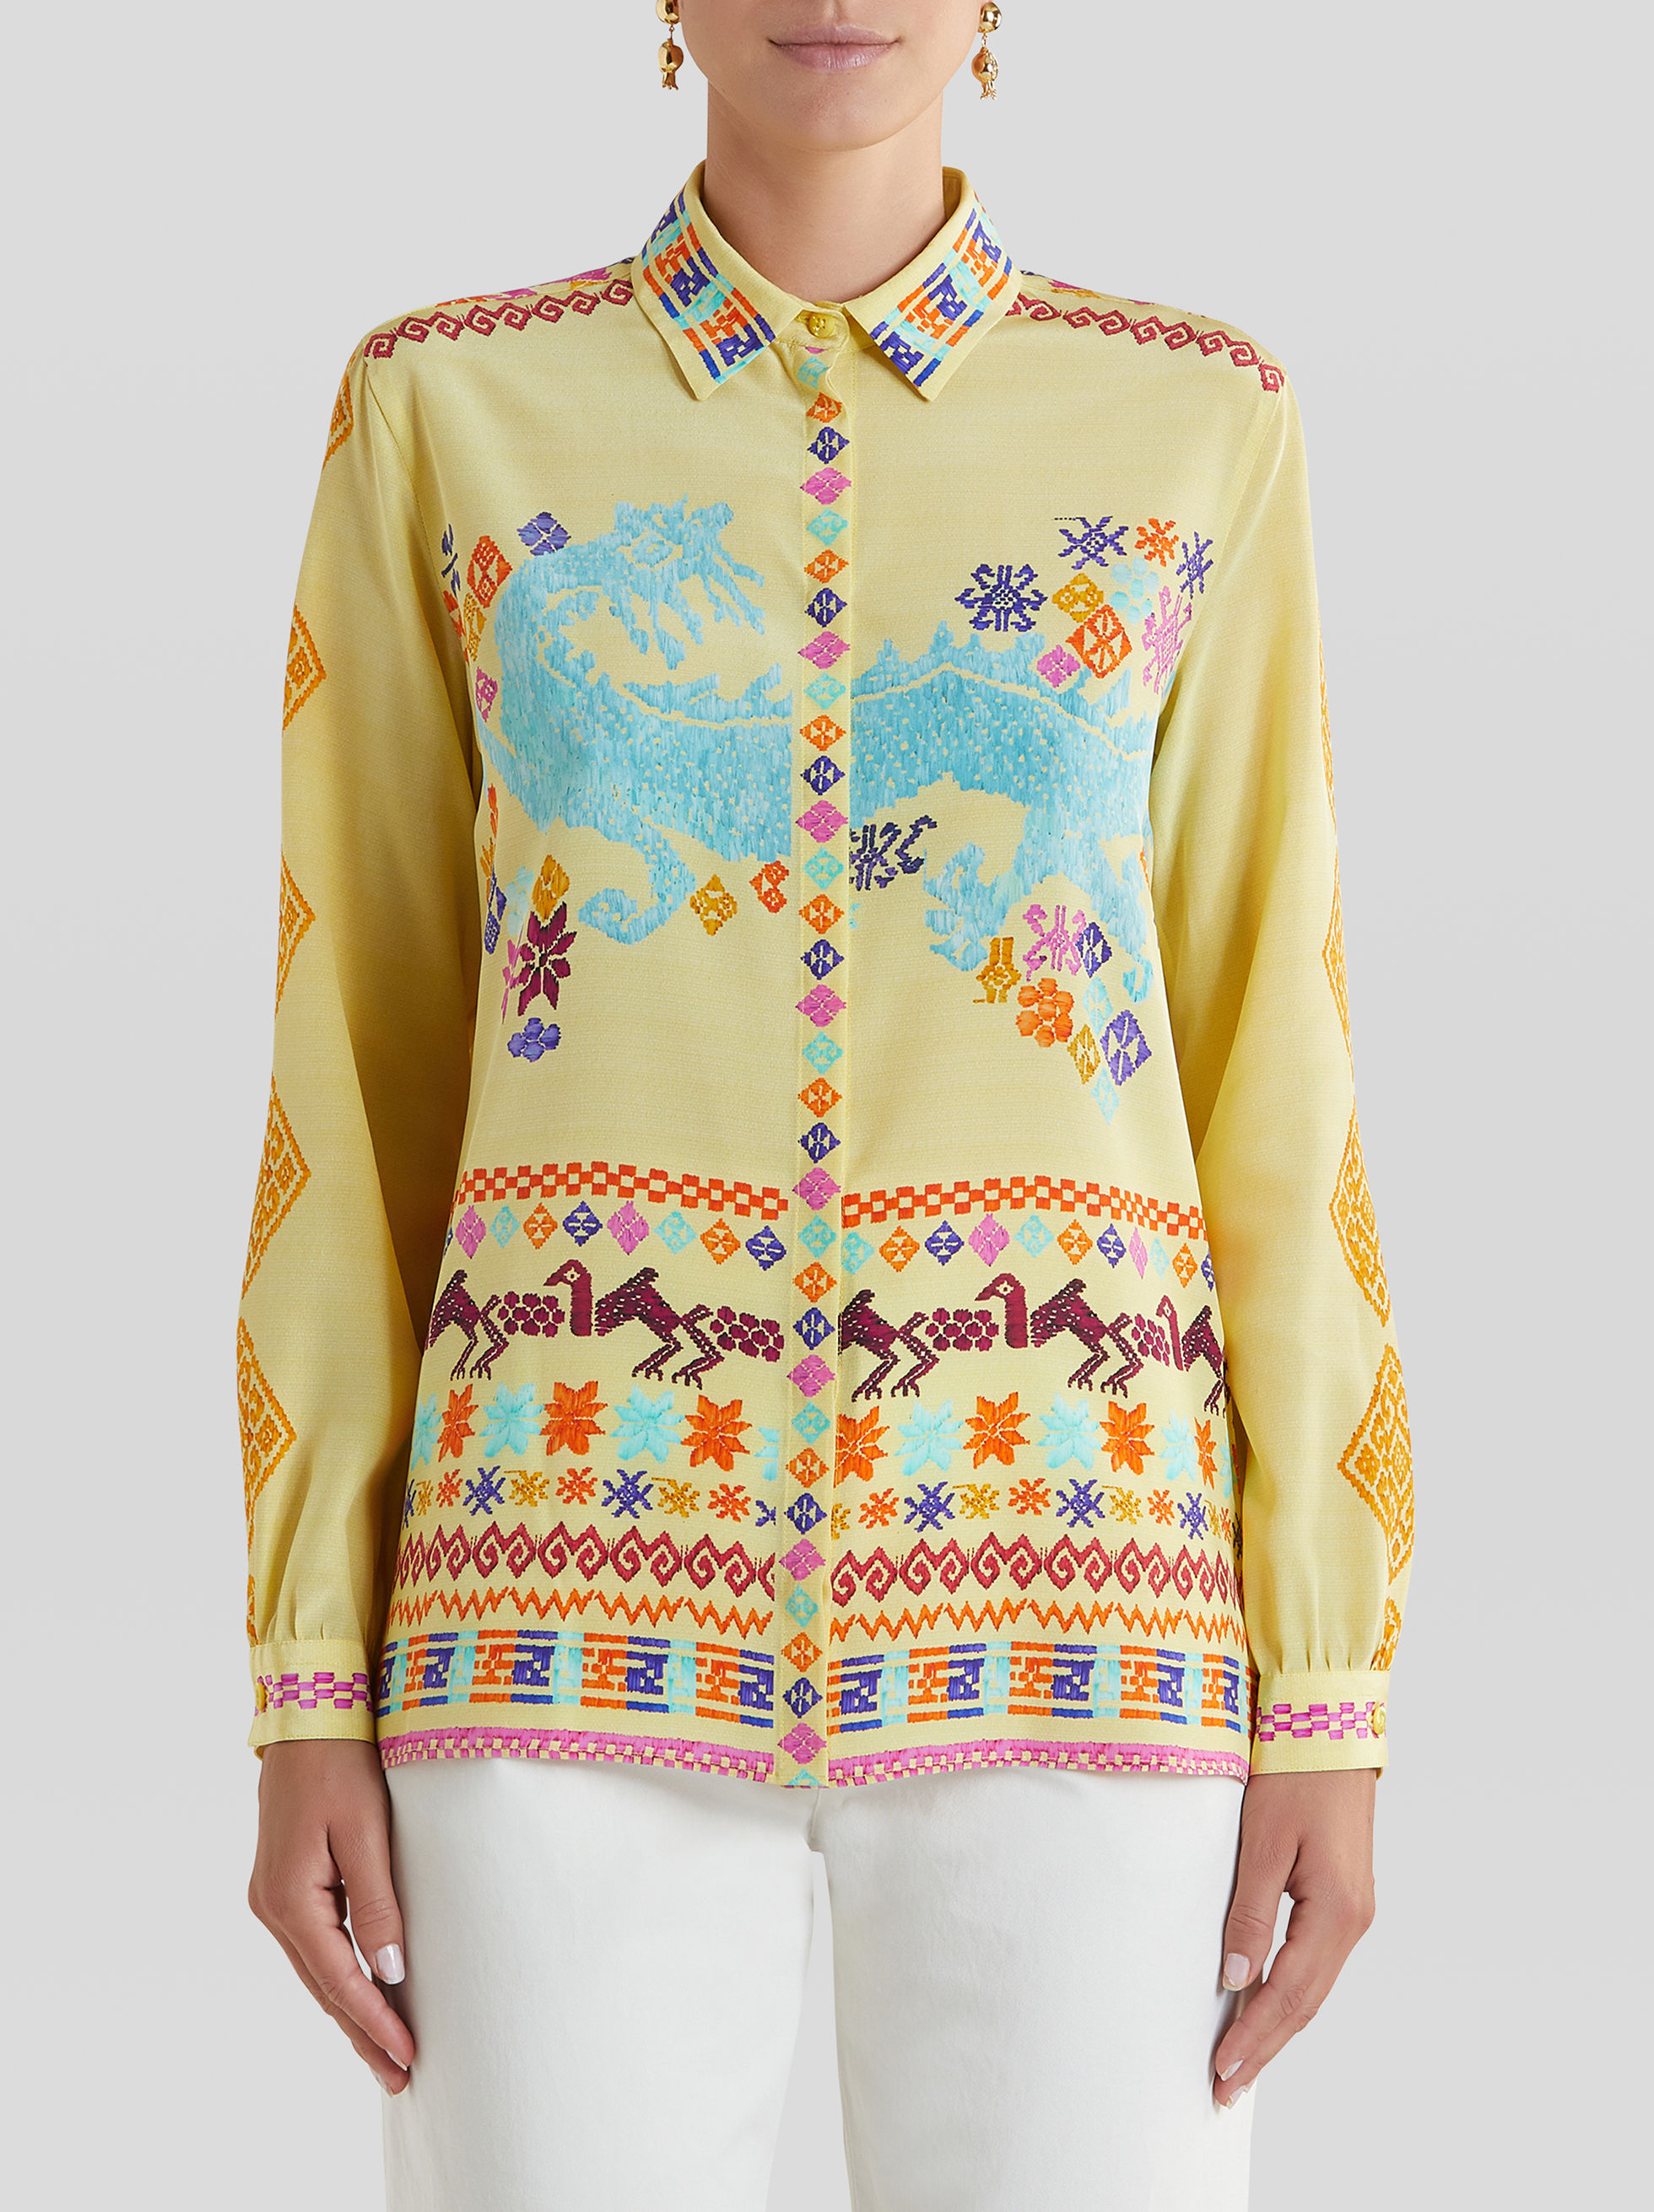 EMBROIDERY-EFFECT PRINT SILK SHIRT